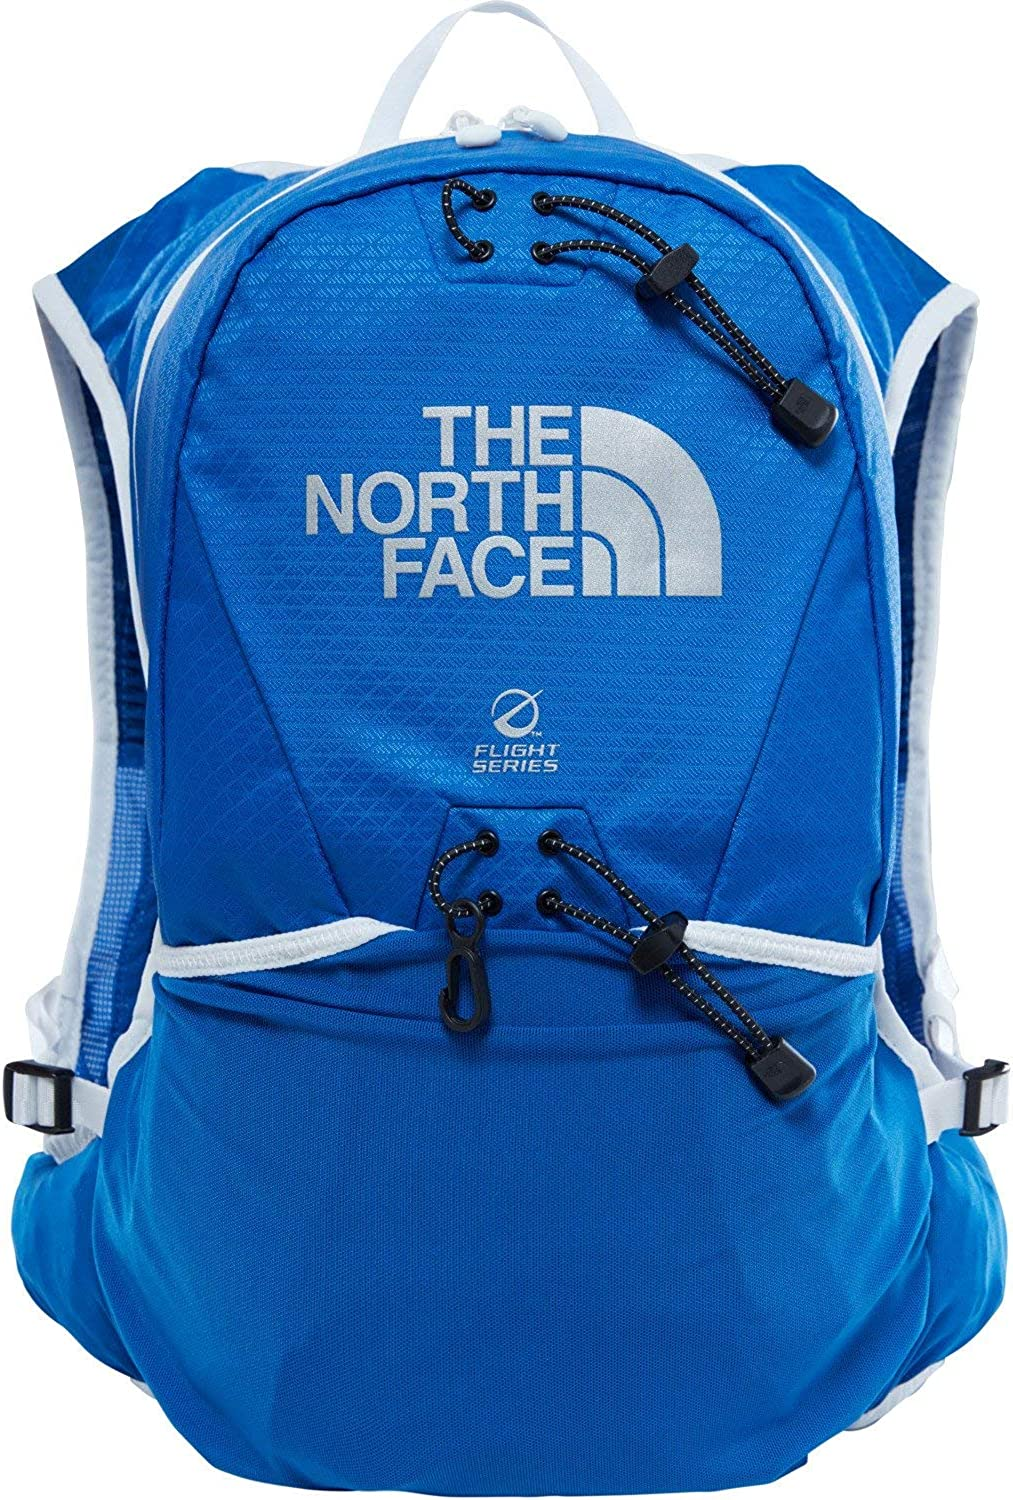 THE NORTH FACE Flight Race MT 12 EU EU EU Rucksack, Unisex Erwachsene Einheitsgröße B079VZ1FC6  Vielfältiges neues Design bcc8cb